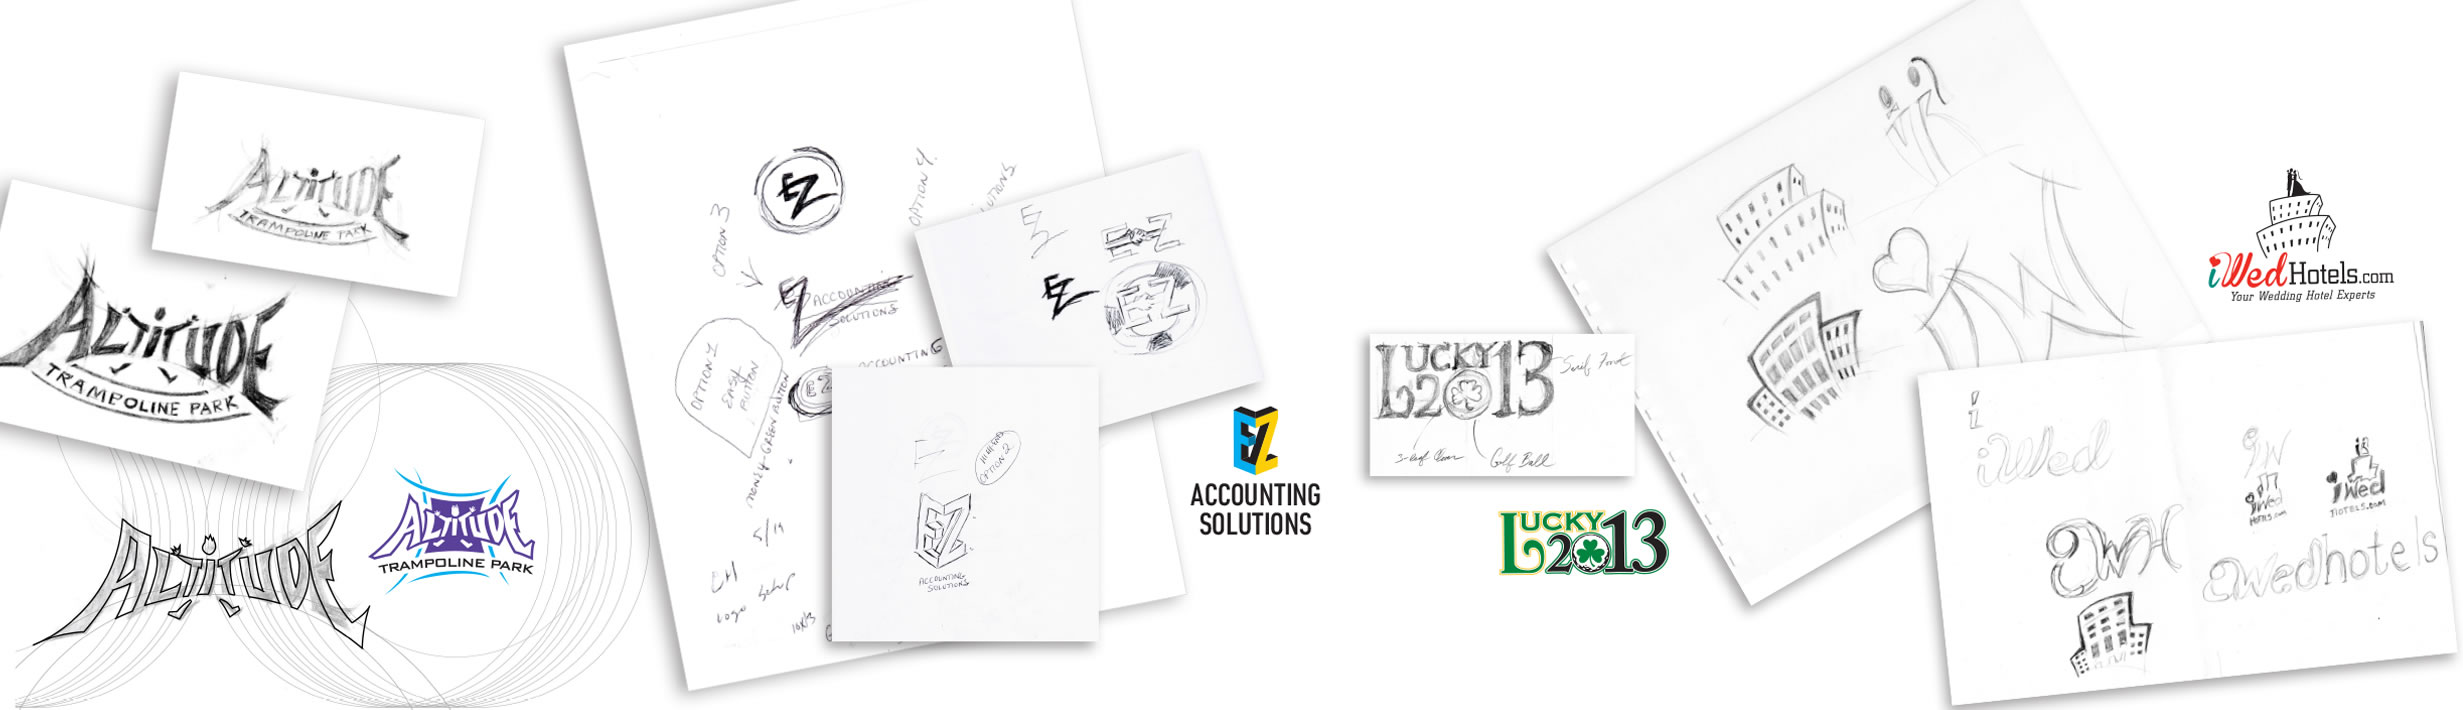 Three examples of logo design from sketch to final iconic logo artwork.